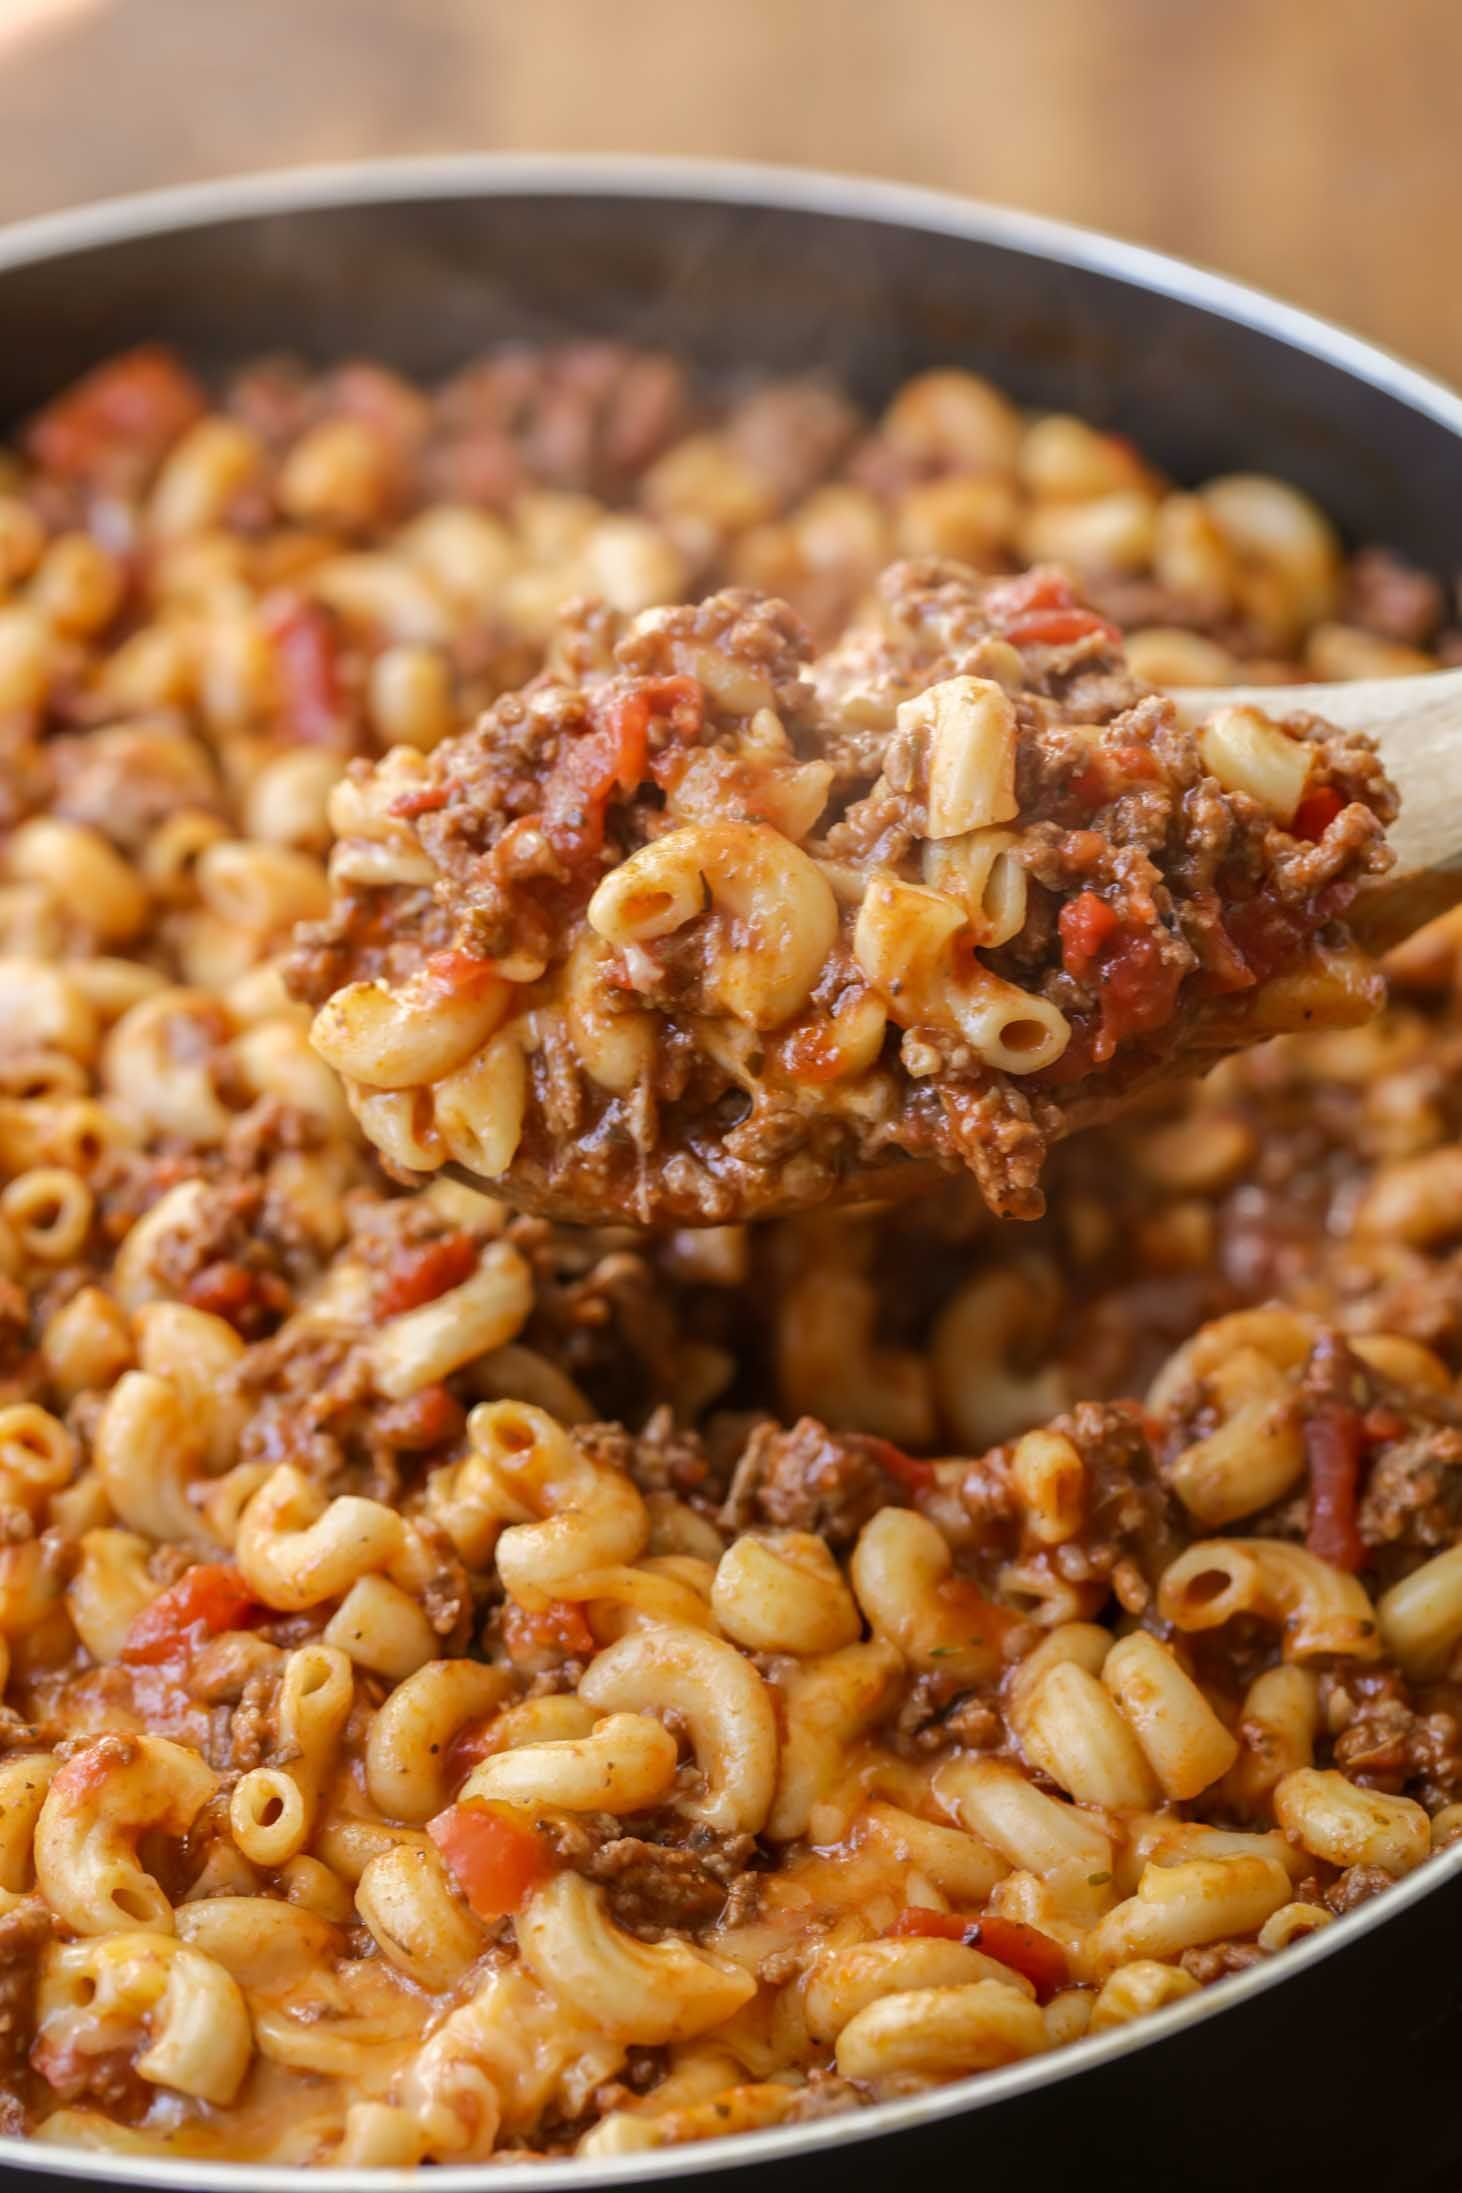 When you need an easy dinner recipe that will please the whole family, try whipping up some old fashioned goulash! Everyone loves this hodgepodge of macaroni noodles, ground beef, tomatoes, cheese, and seasonings!When you need an easy dinner recipe that will please the whole family, try whipping up some old fashioned goulash! Everyone loves th...